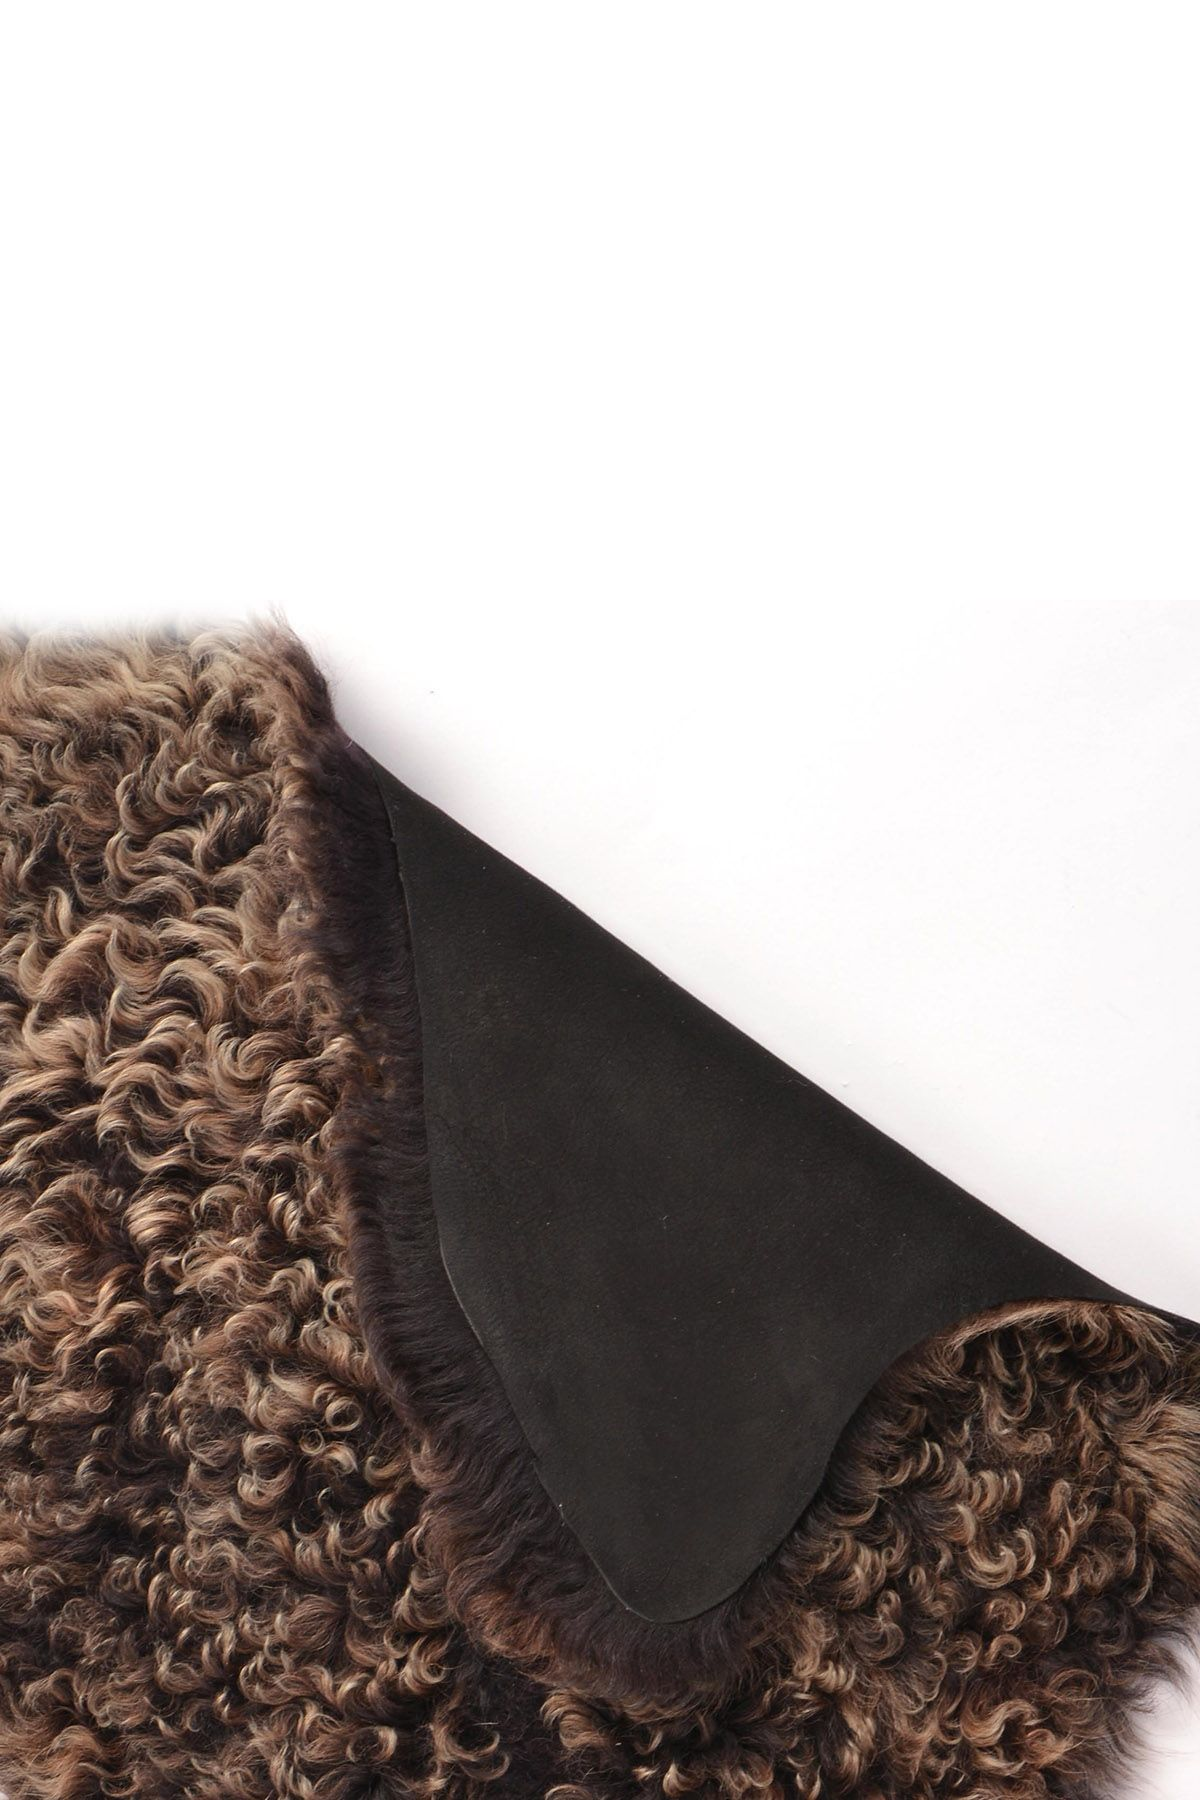 Erdogan Deri Curly Decorative Sheepskin Rug Black